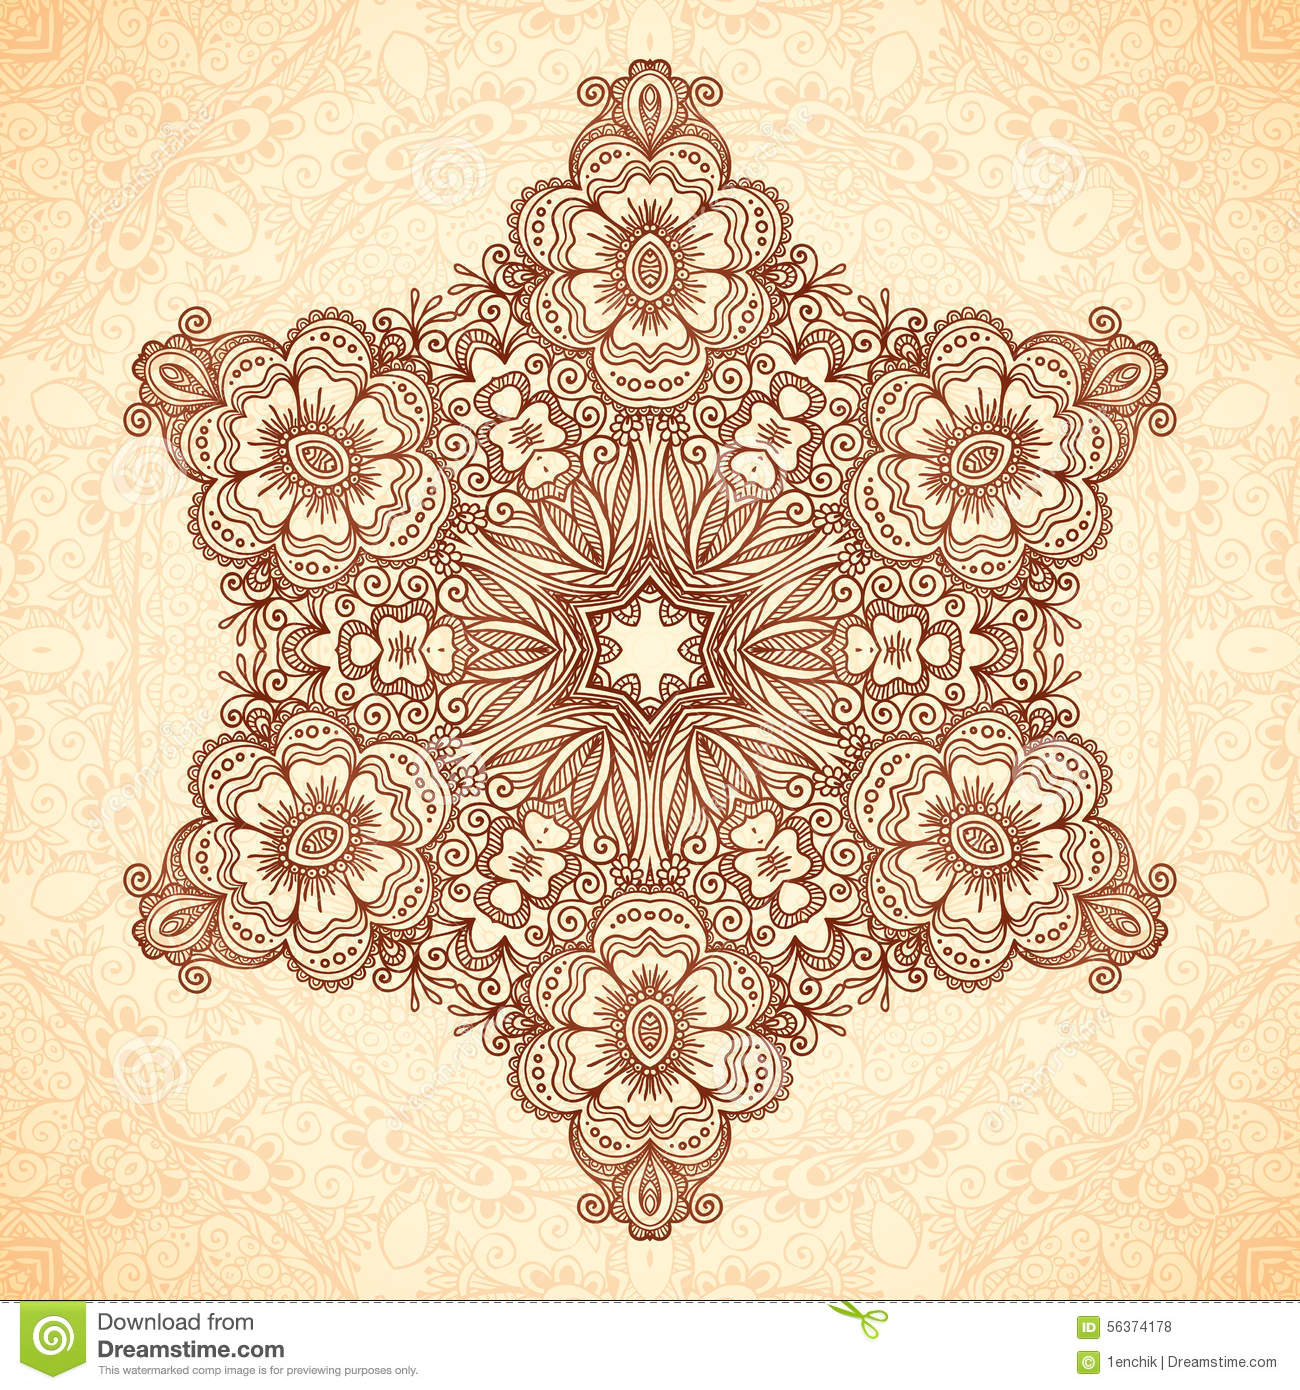 Ornate vintage vector background in mehndi style royalty free stock - Royalty Free Vector Download Decorative Star Mandala In Indian Mehndi Style Stock